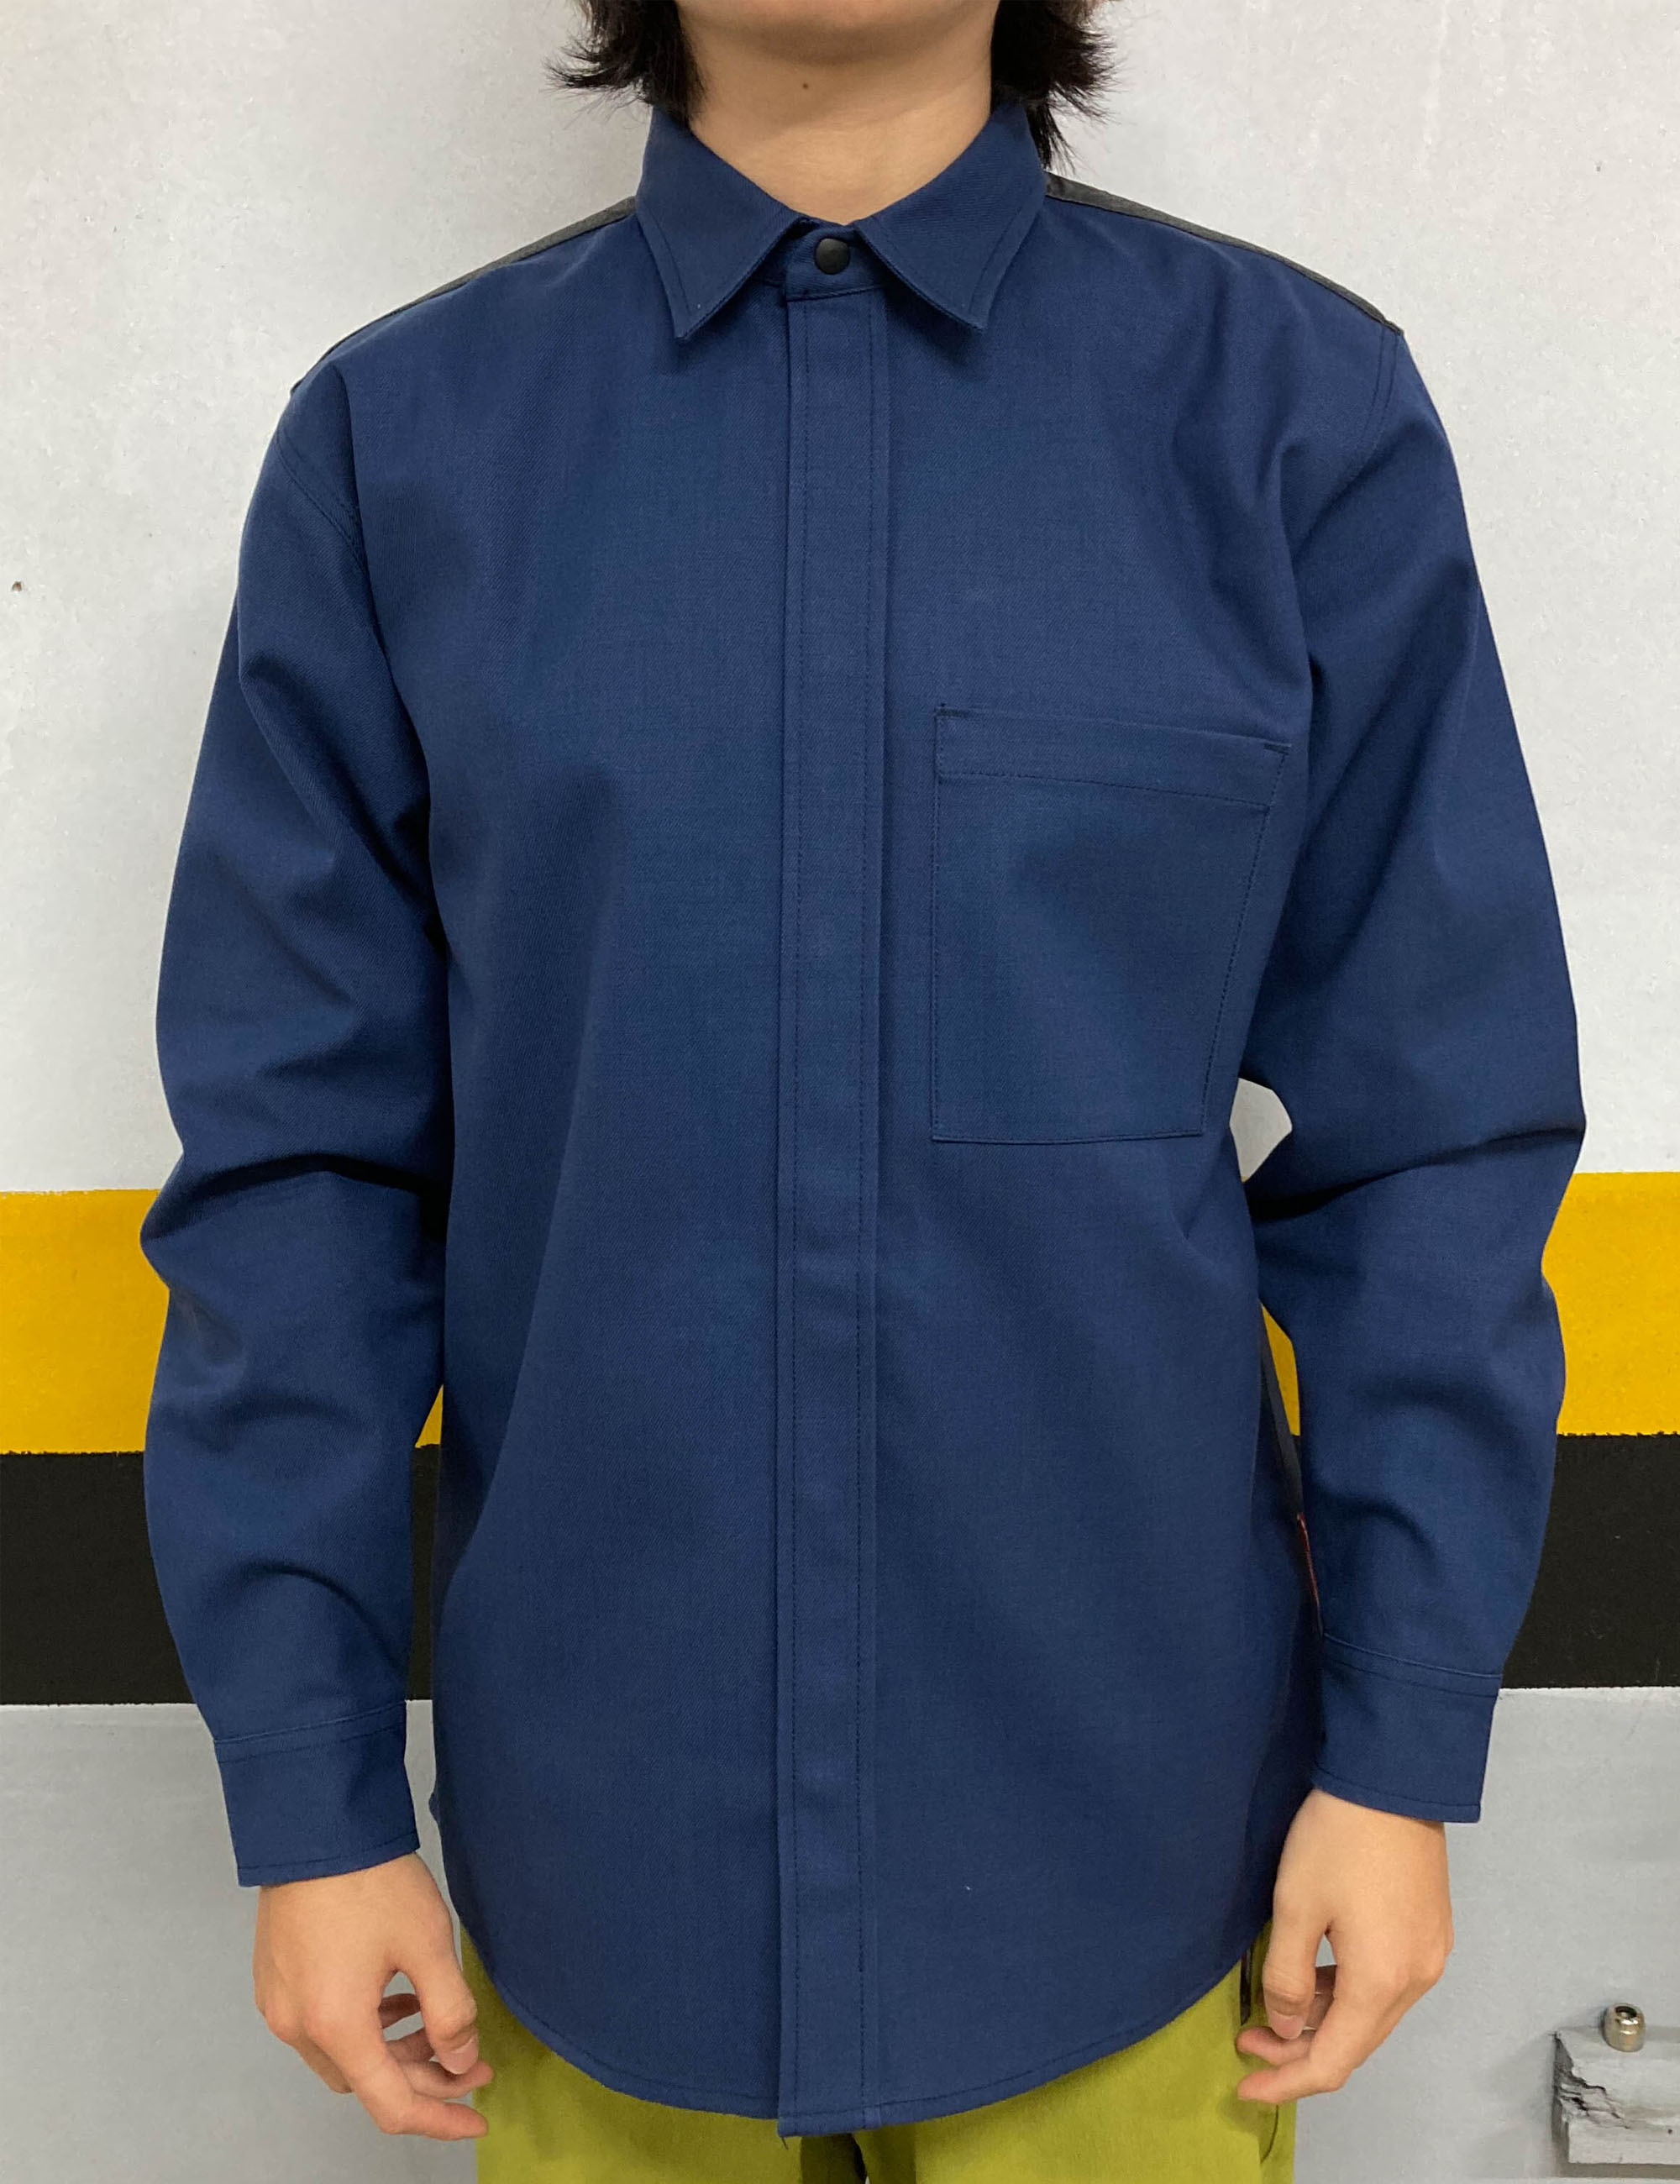 KLOPMAN FR GLOVE PANEL OVERSHIRT_NAVY